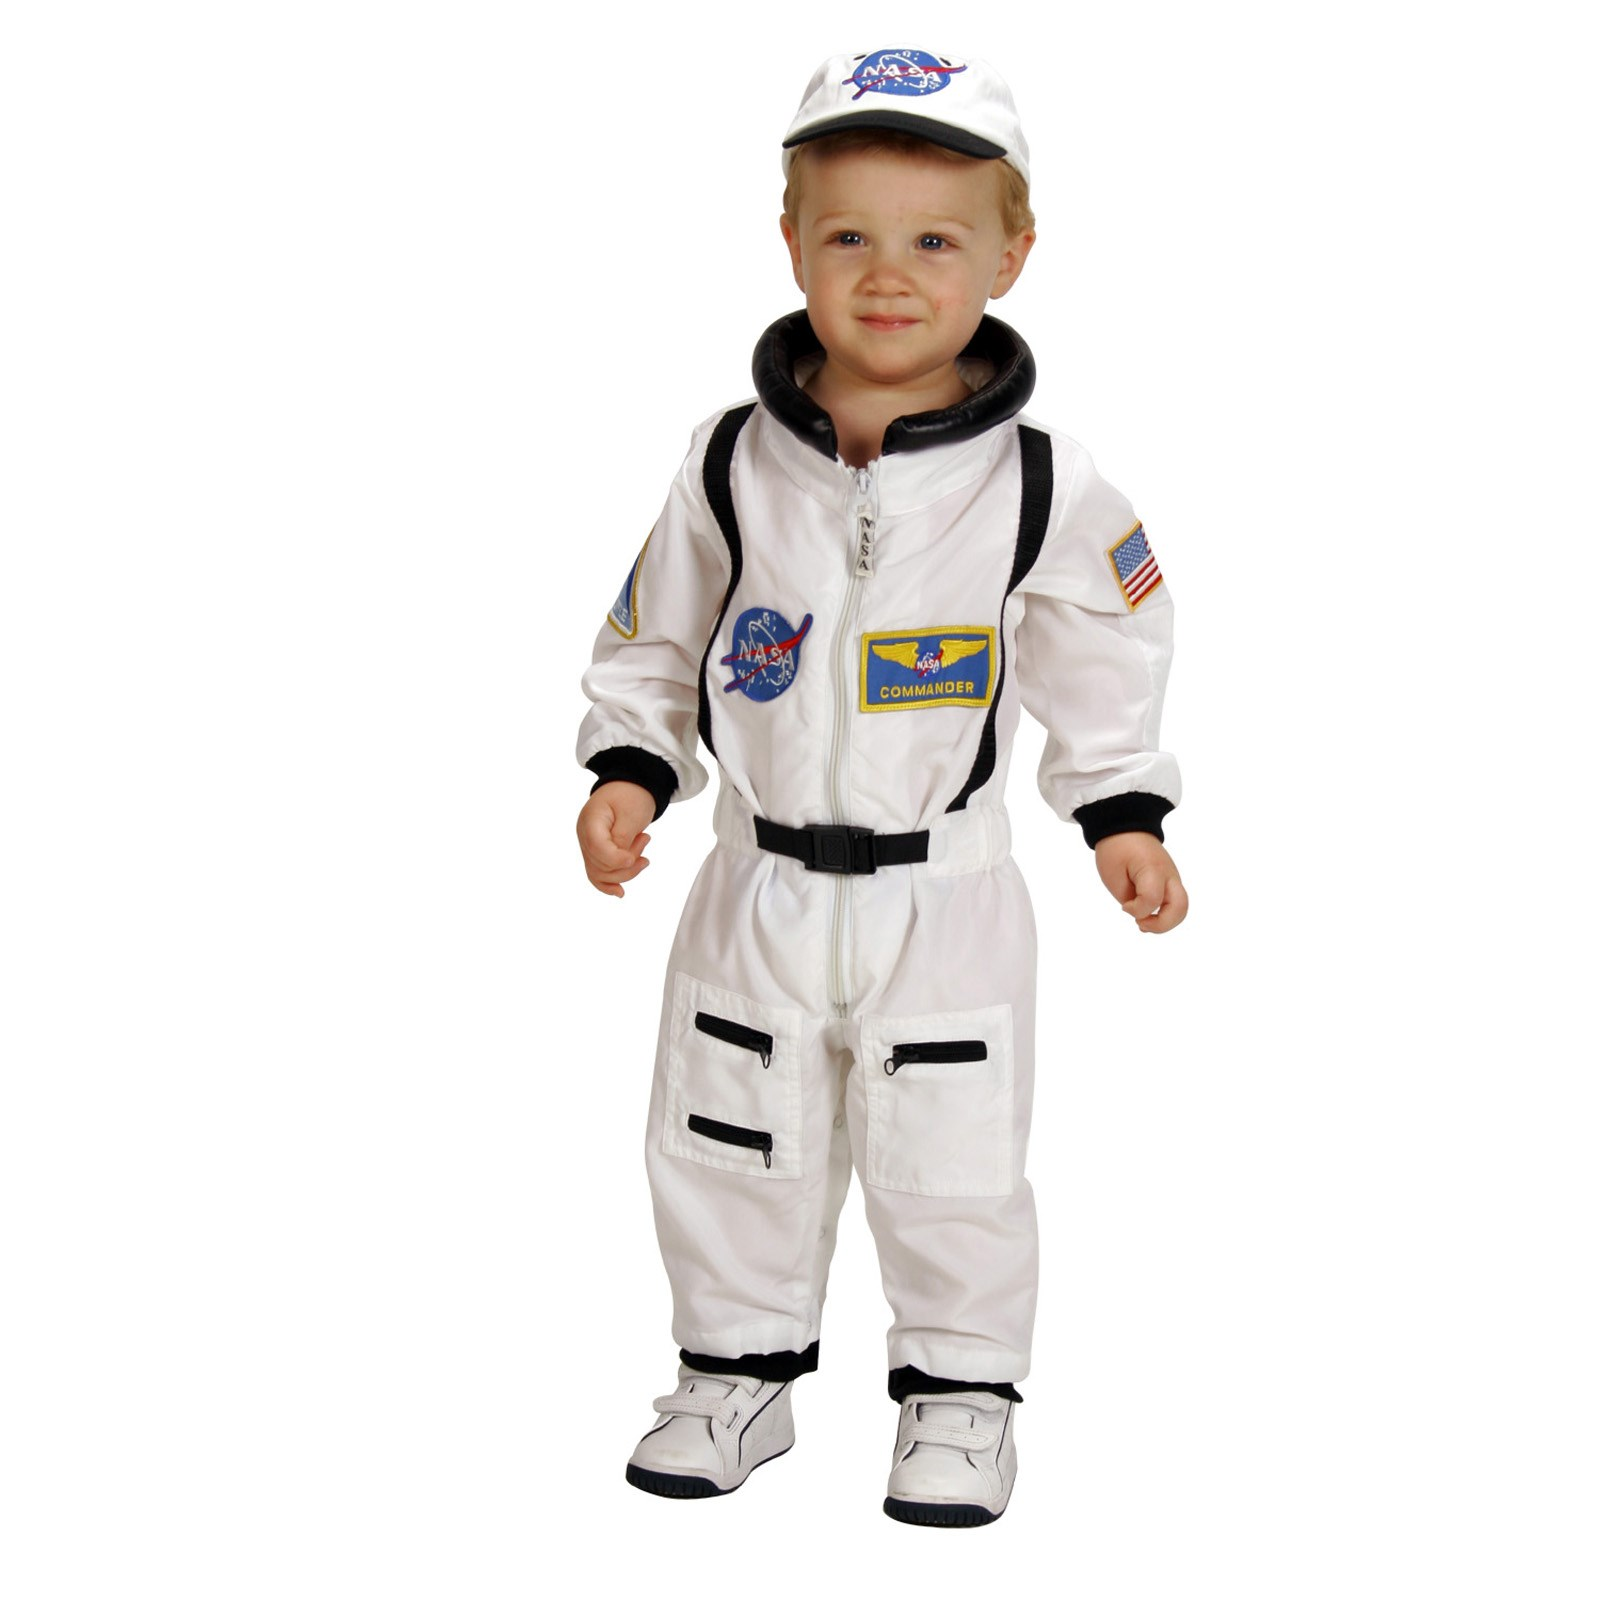 NASA Jr. Astronaut Suit White Toddler Costume